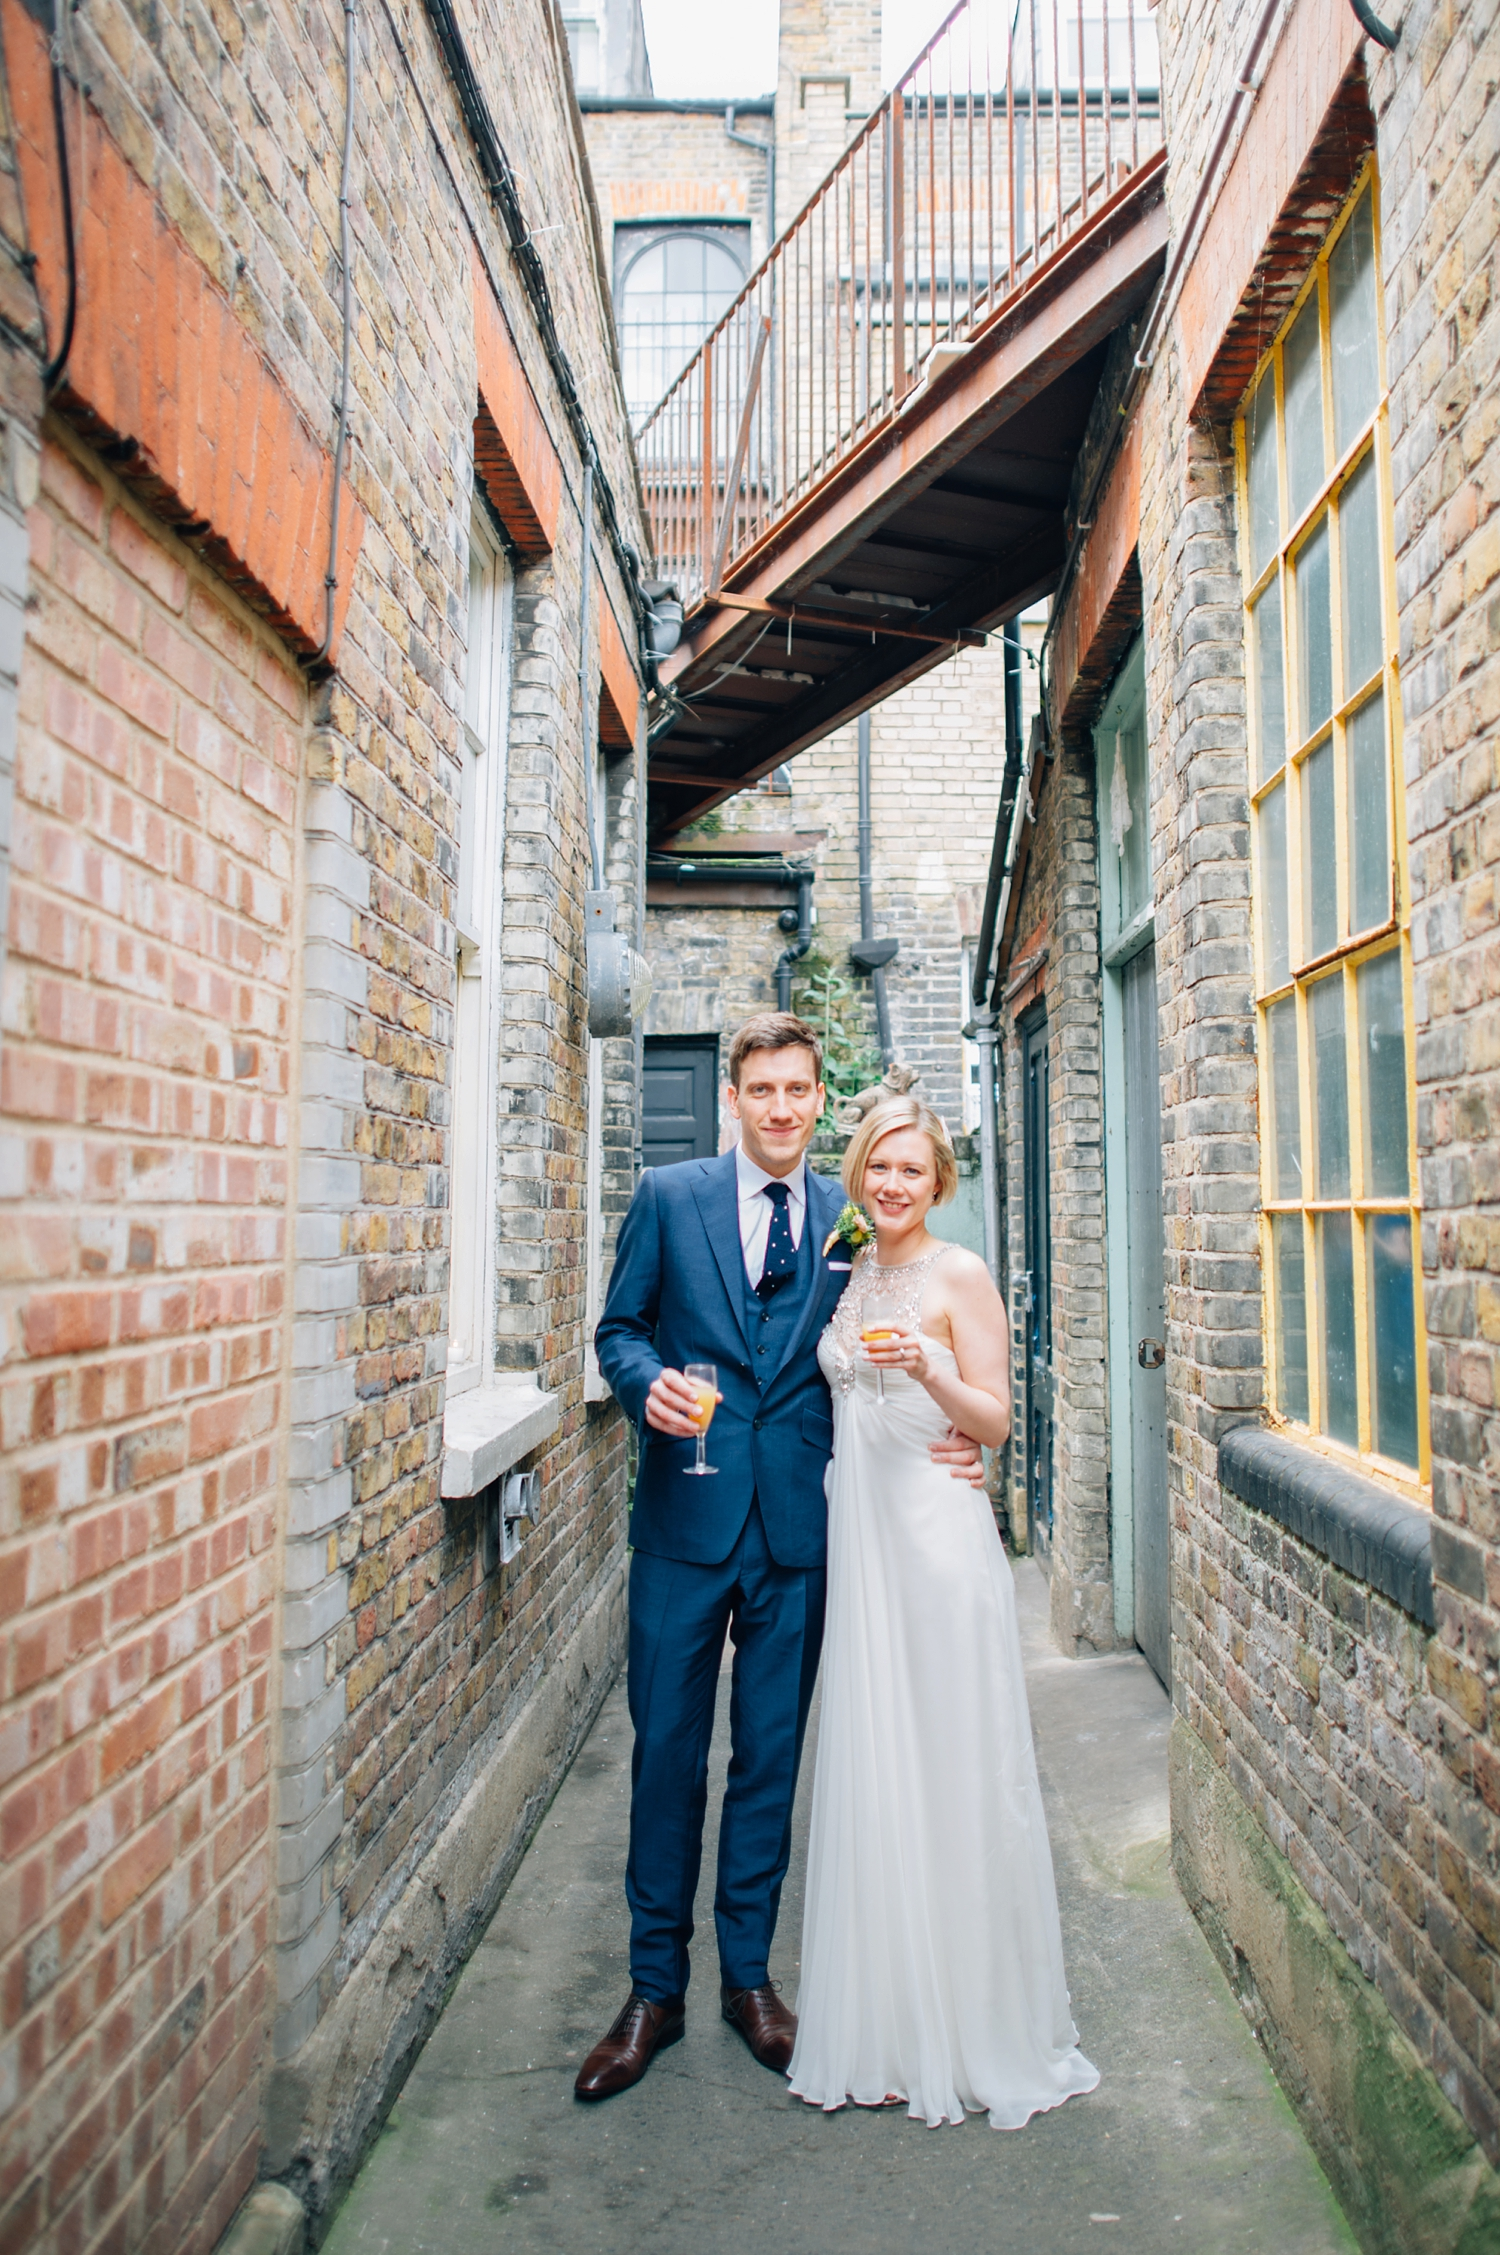 0127-lisa-devine-alternative-wedding-photography-london-hackney-dalston-london-photography-townhall-hotel.JPG